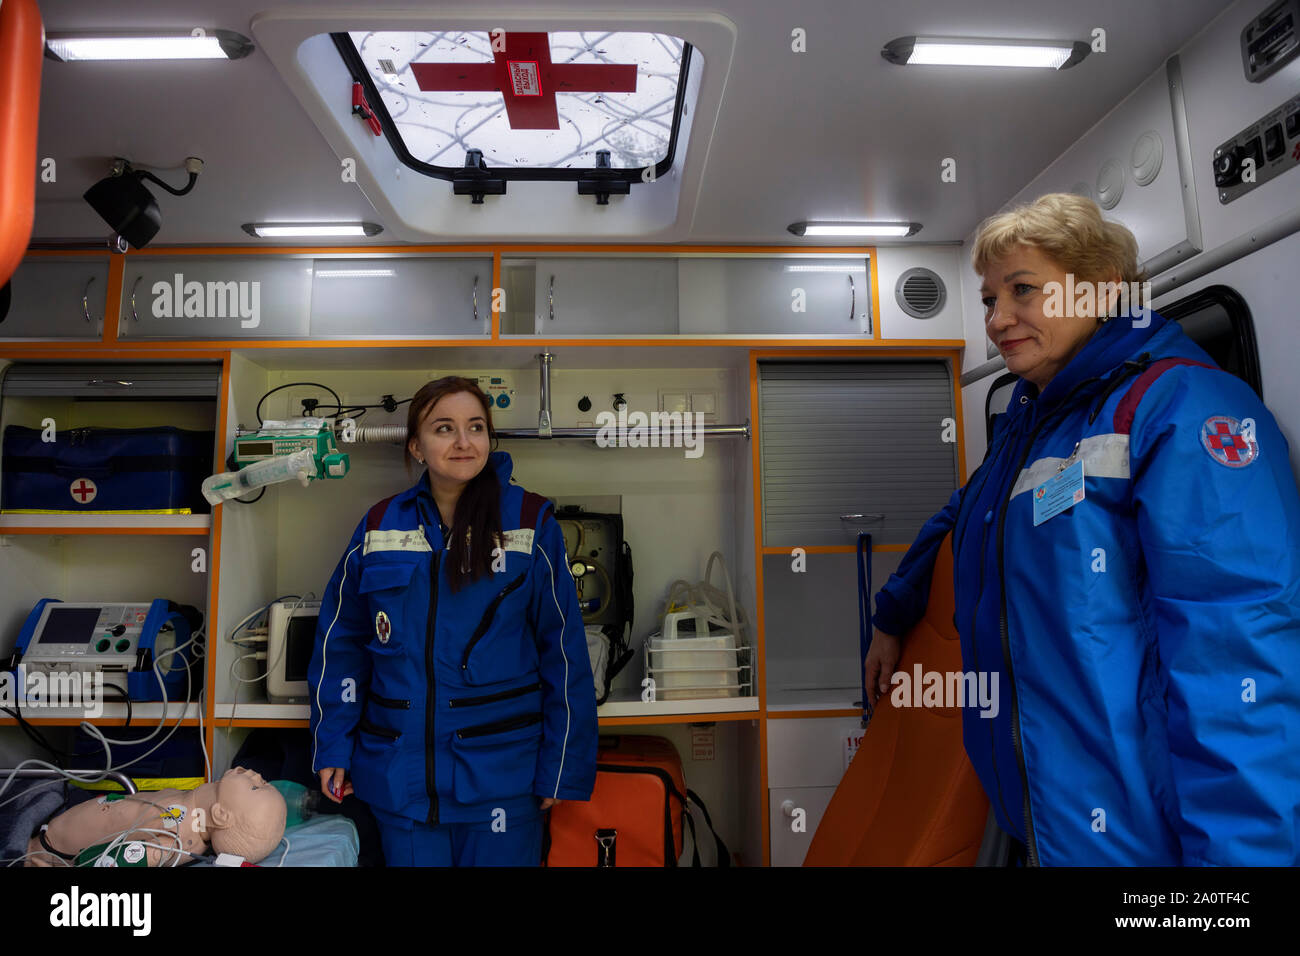 A team of Ambulance inside a pediatric intensive care unit in Moscow, Russia Stock Photo